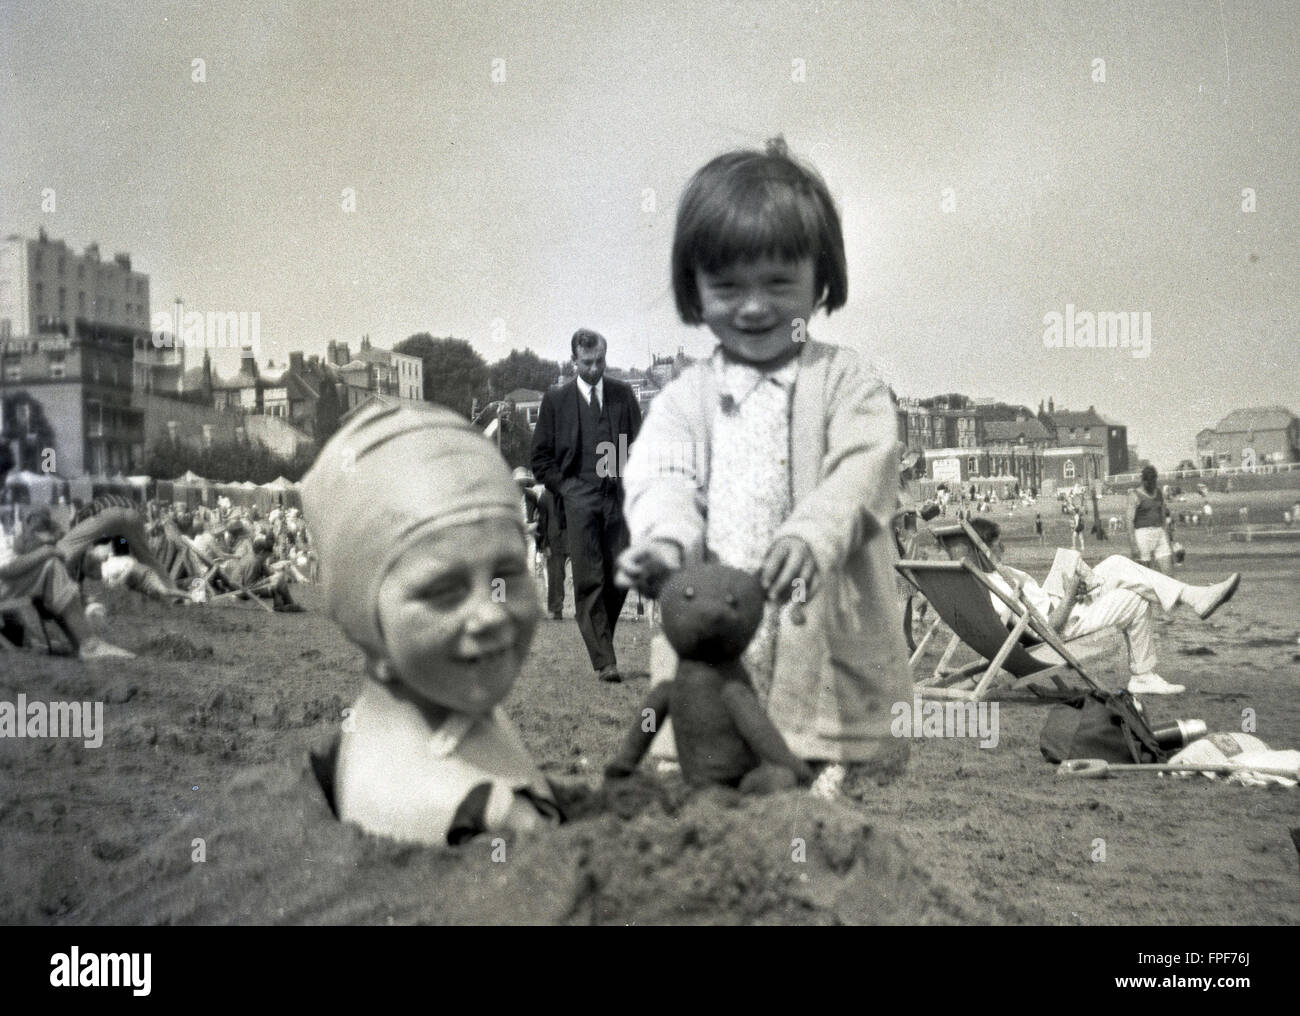 1930s historical, picture of two young girls enjoying themselves on a beach. - Stock Image